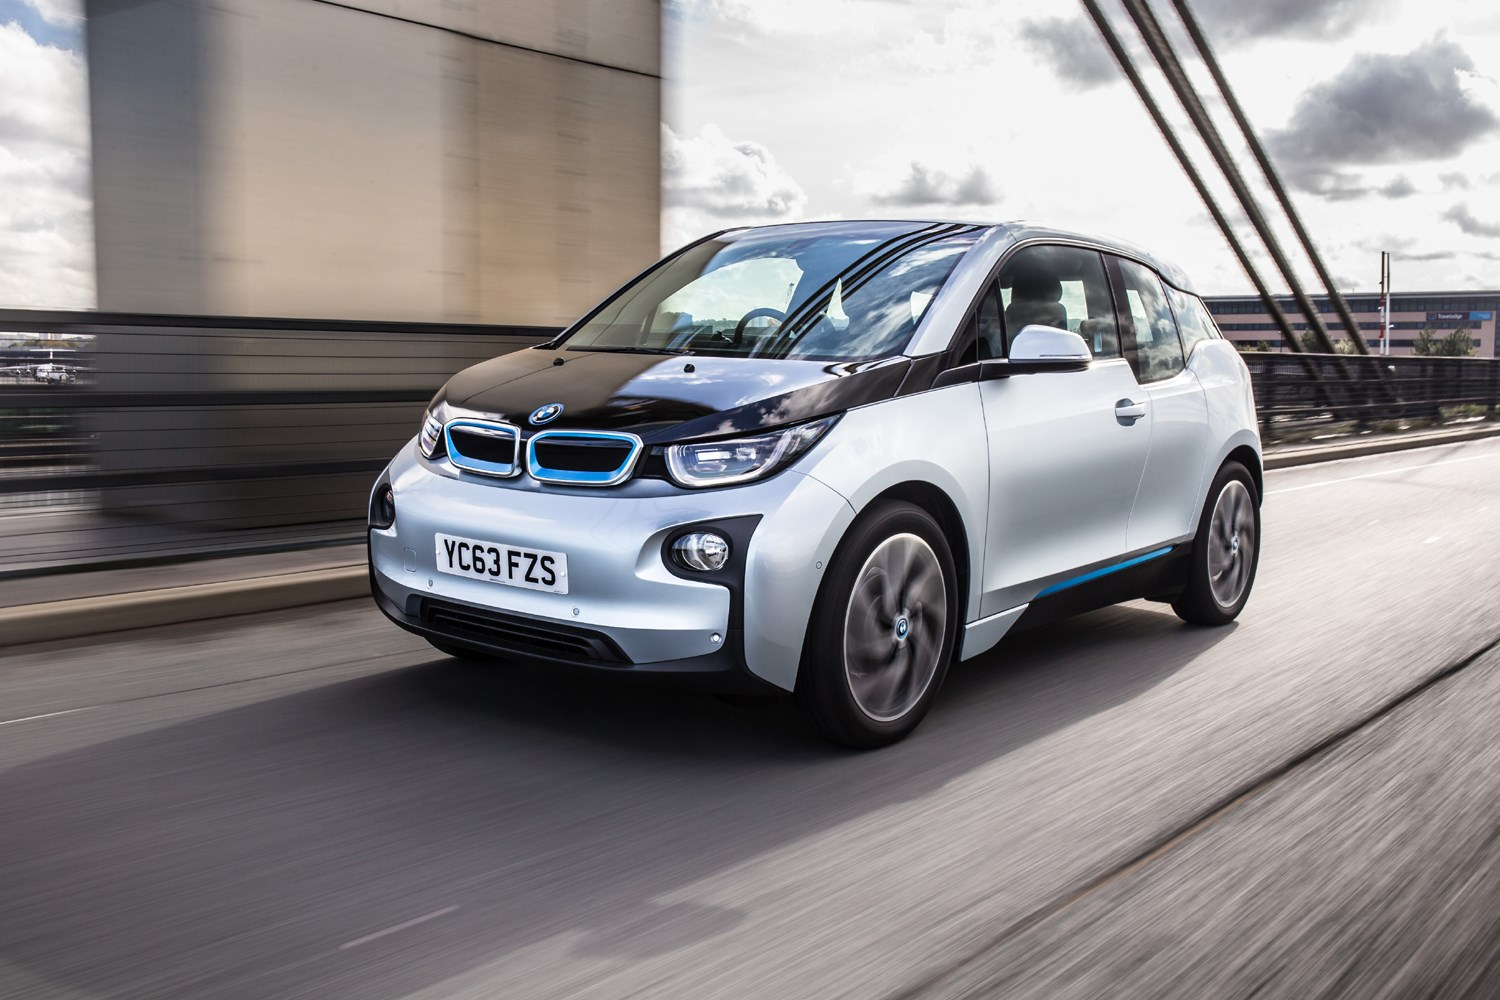 The bmw i3 electric car has always been an attractive choice for an inner city commute thanks to its ultra low fuel cost and minuscule bik tax bills